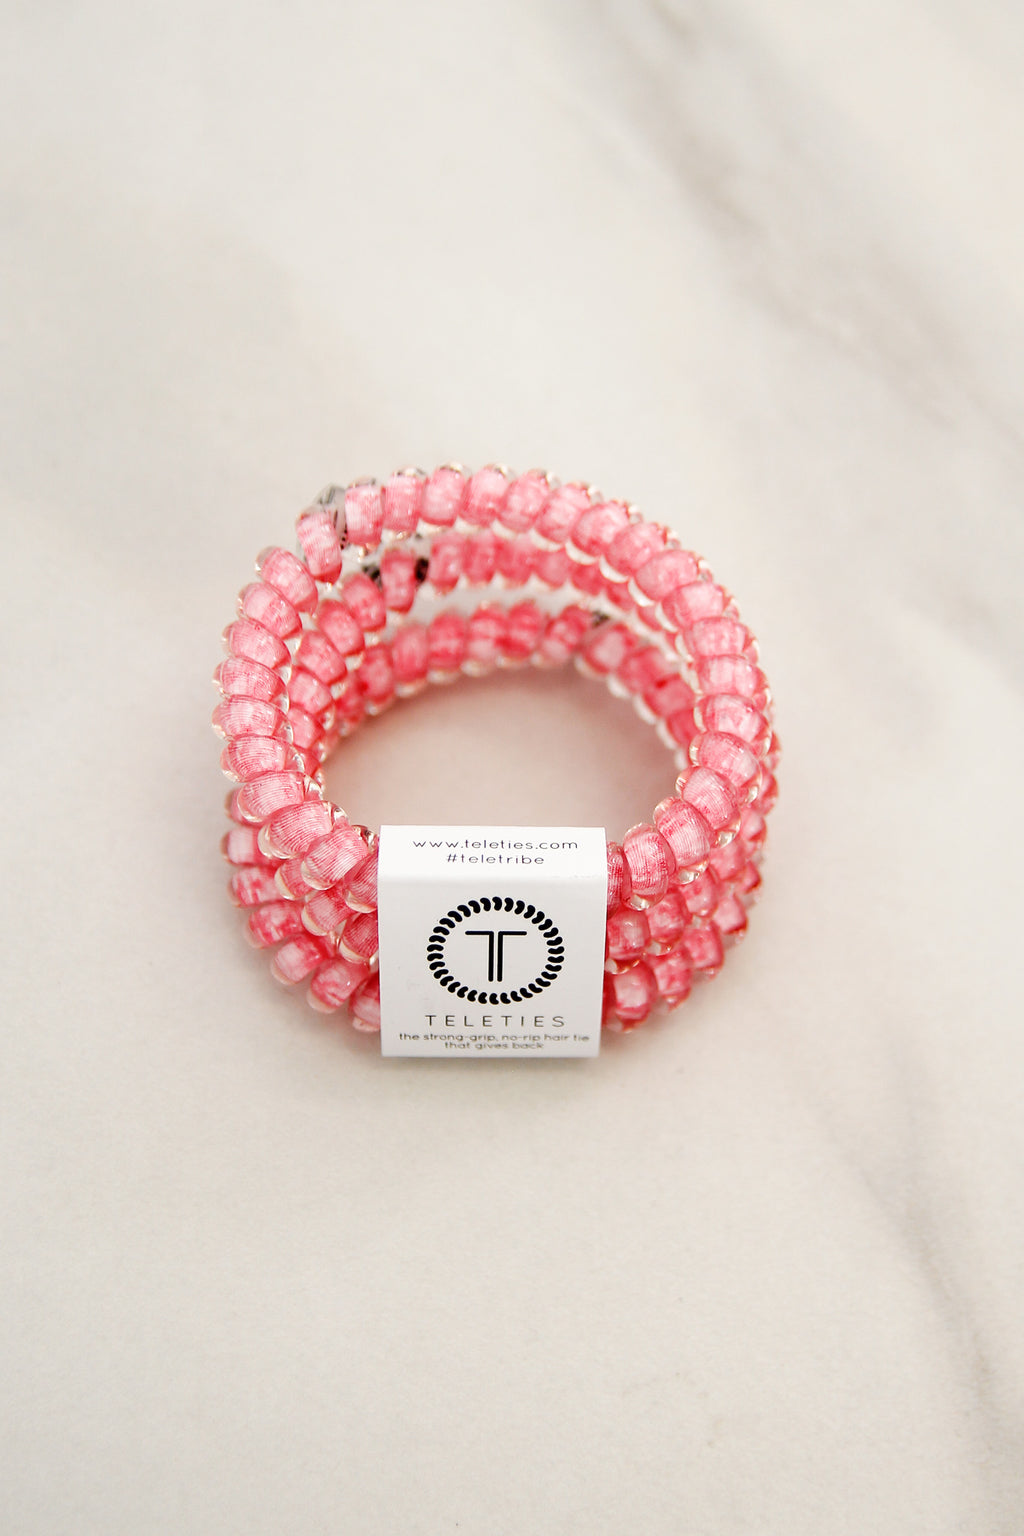 Teleties Small Hair Ties - Gypsy Rose